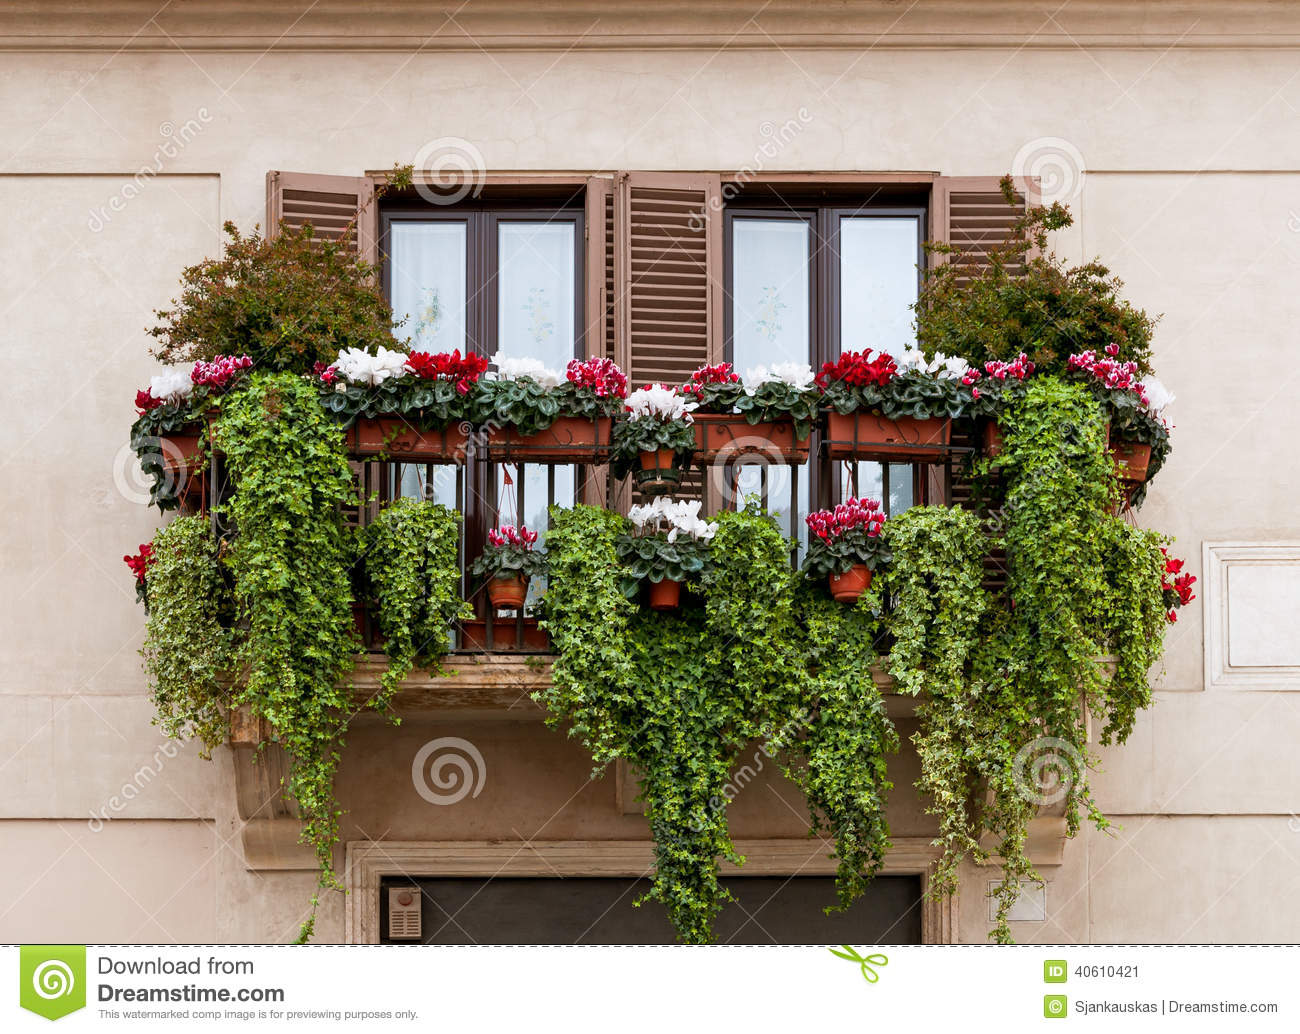 Balcony With Flowers Stock Photo Image 40610421